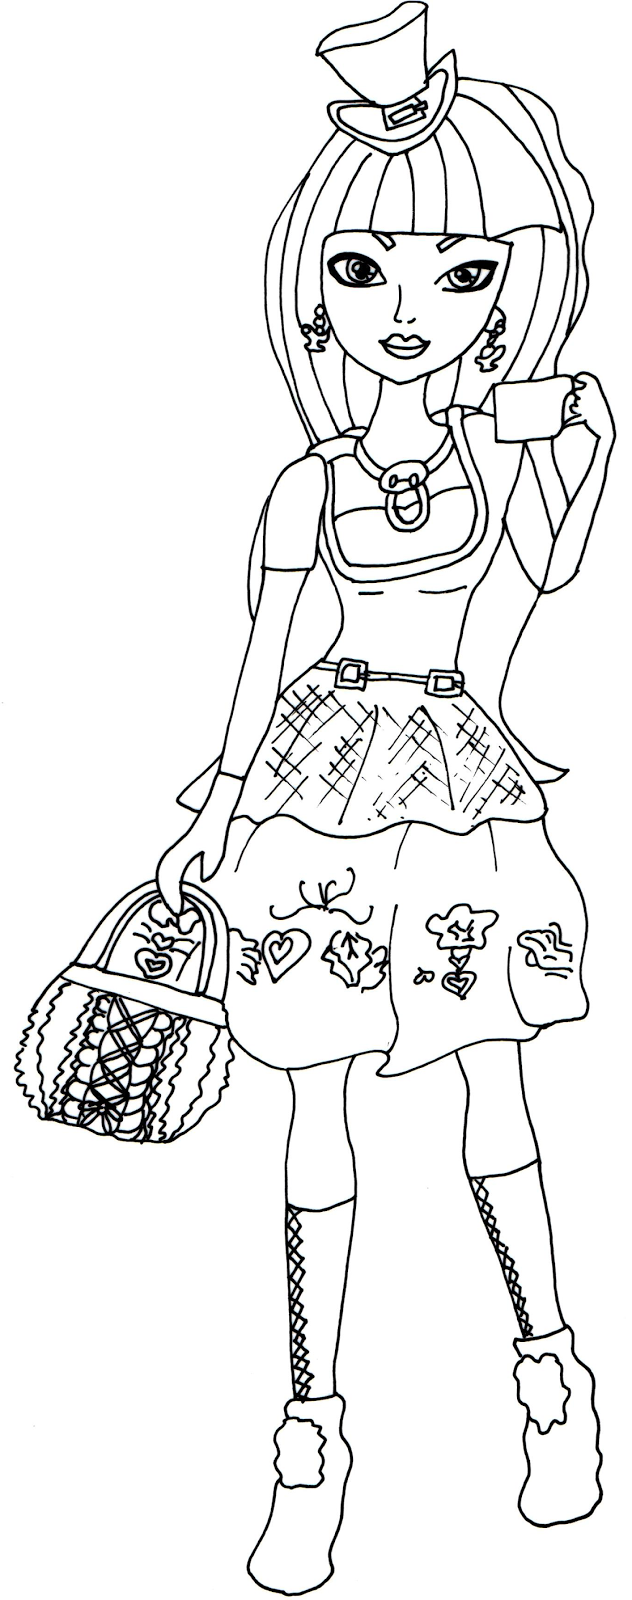 Free Printable Ever After High Coloring Pages: Cerise Hood